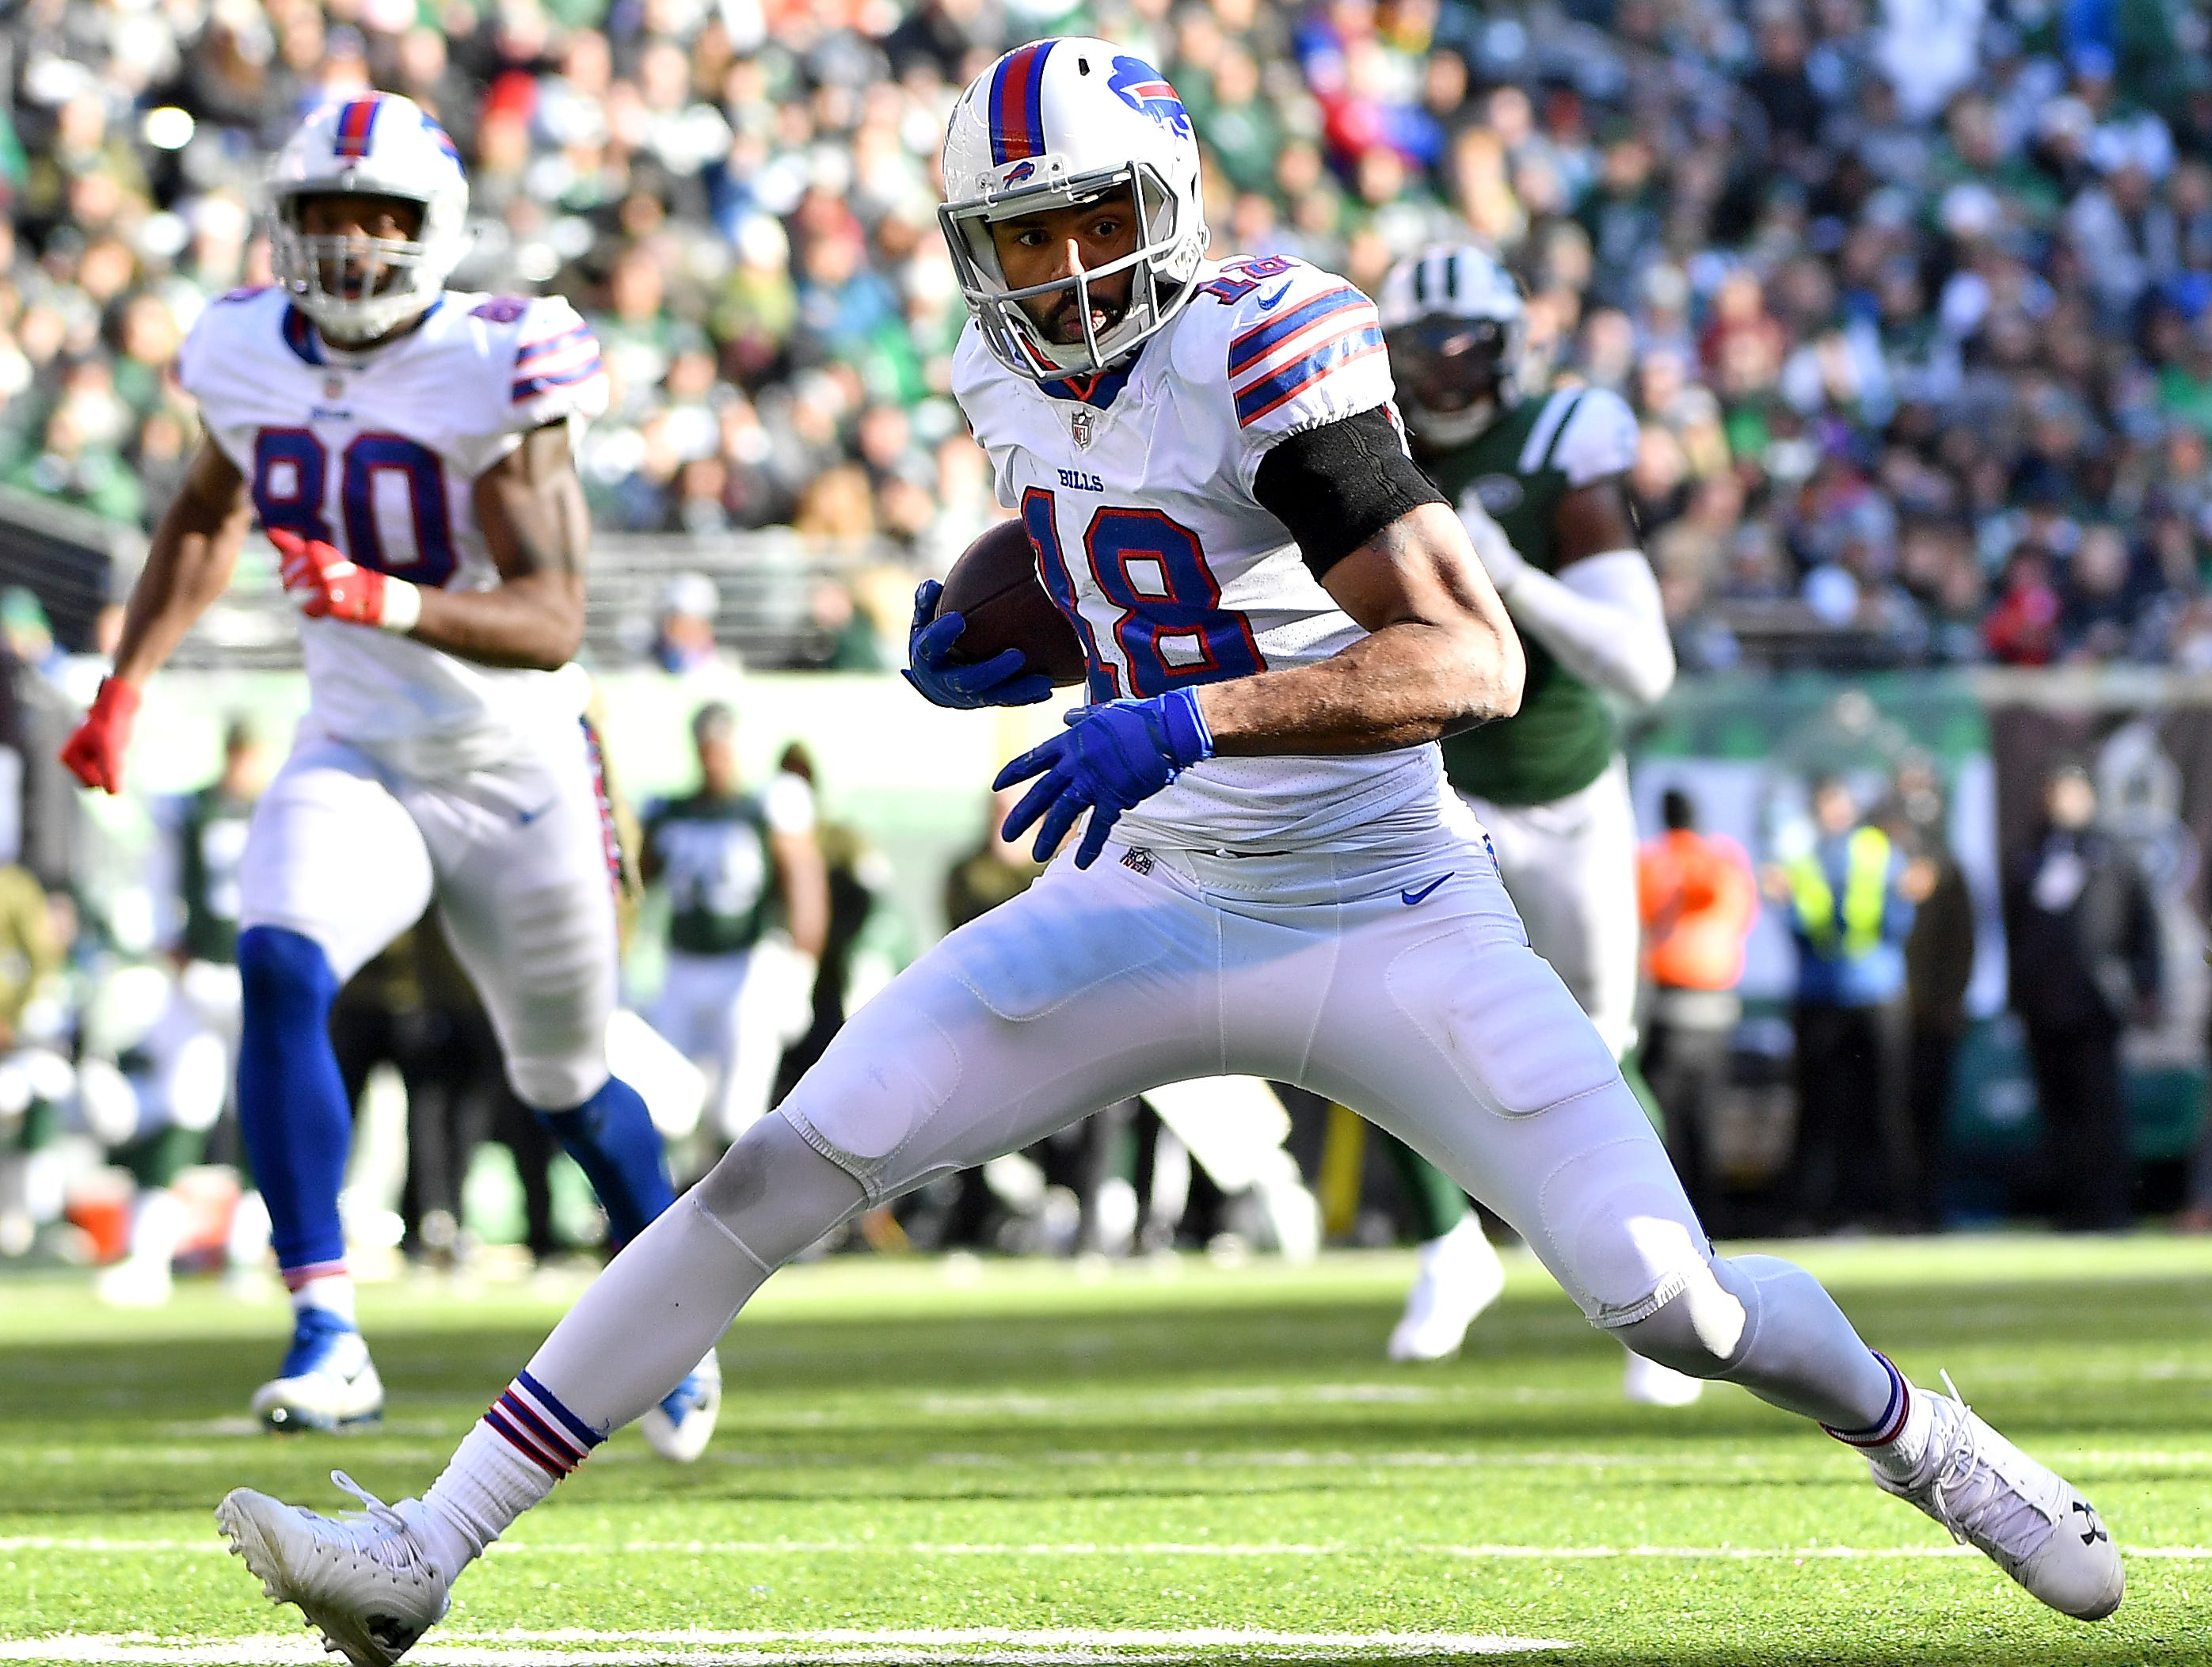 EAST RUTHERFORD, NEW JERSEY - NOVEMBER 11: Andre Holmes #18 of the Buffalo Bills runs the ball after a first down reception against the New York Jets during the second quarter at MetLife Stadium on November 11, 2018 in East Rutherford, New Jersey. (Photo by Mark Brown/Getty Images)